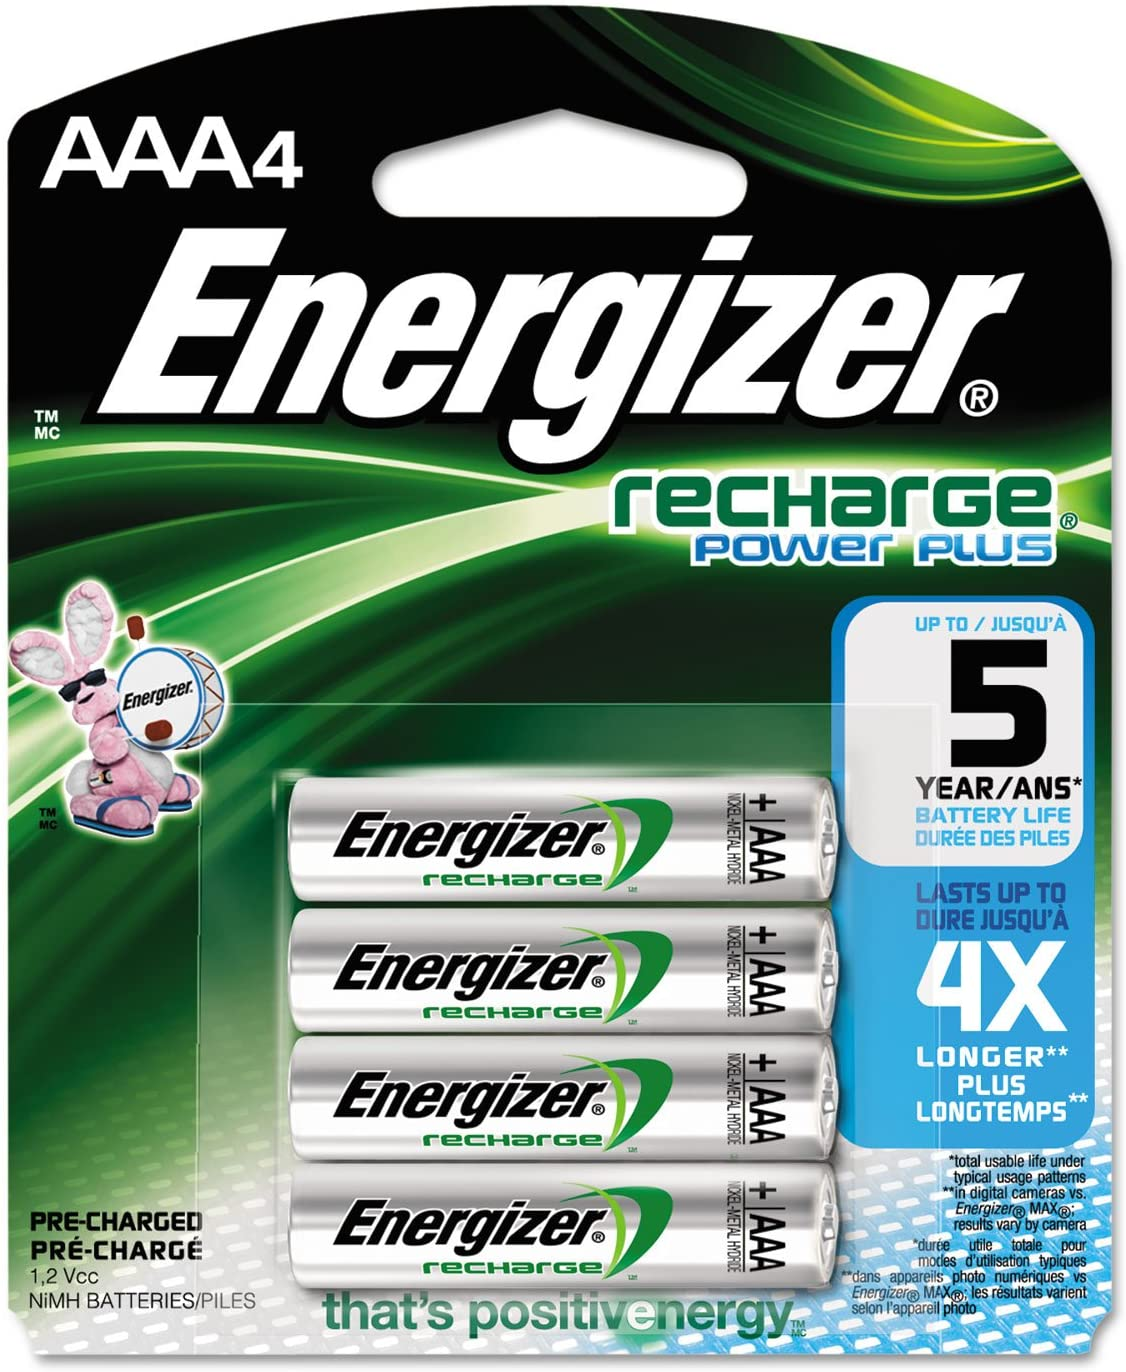 Energizer NiMH Rechargeable Batteries AAA safety Spasm price Pack 4